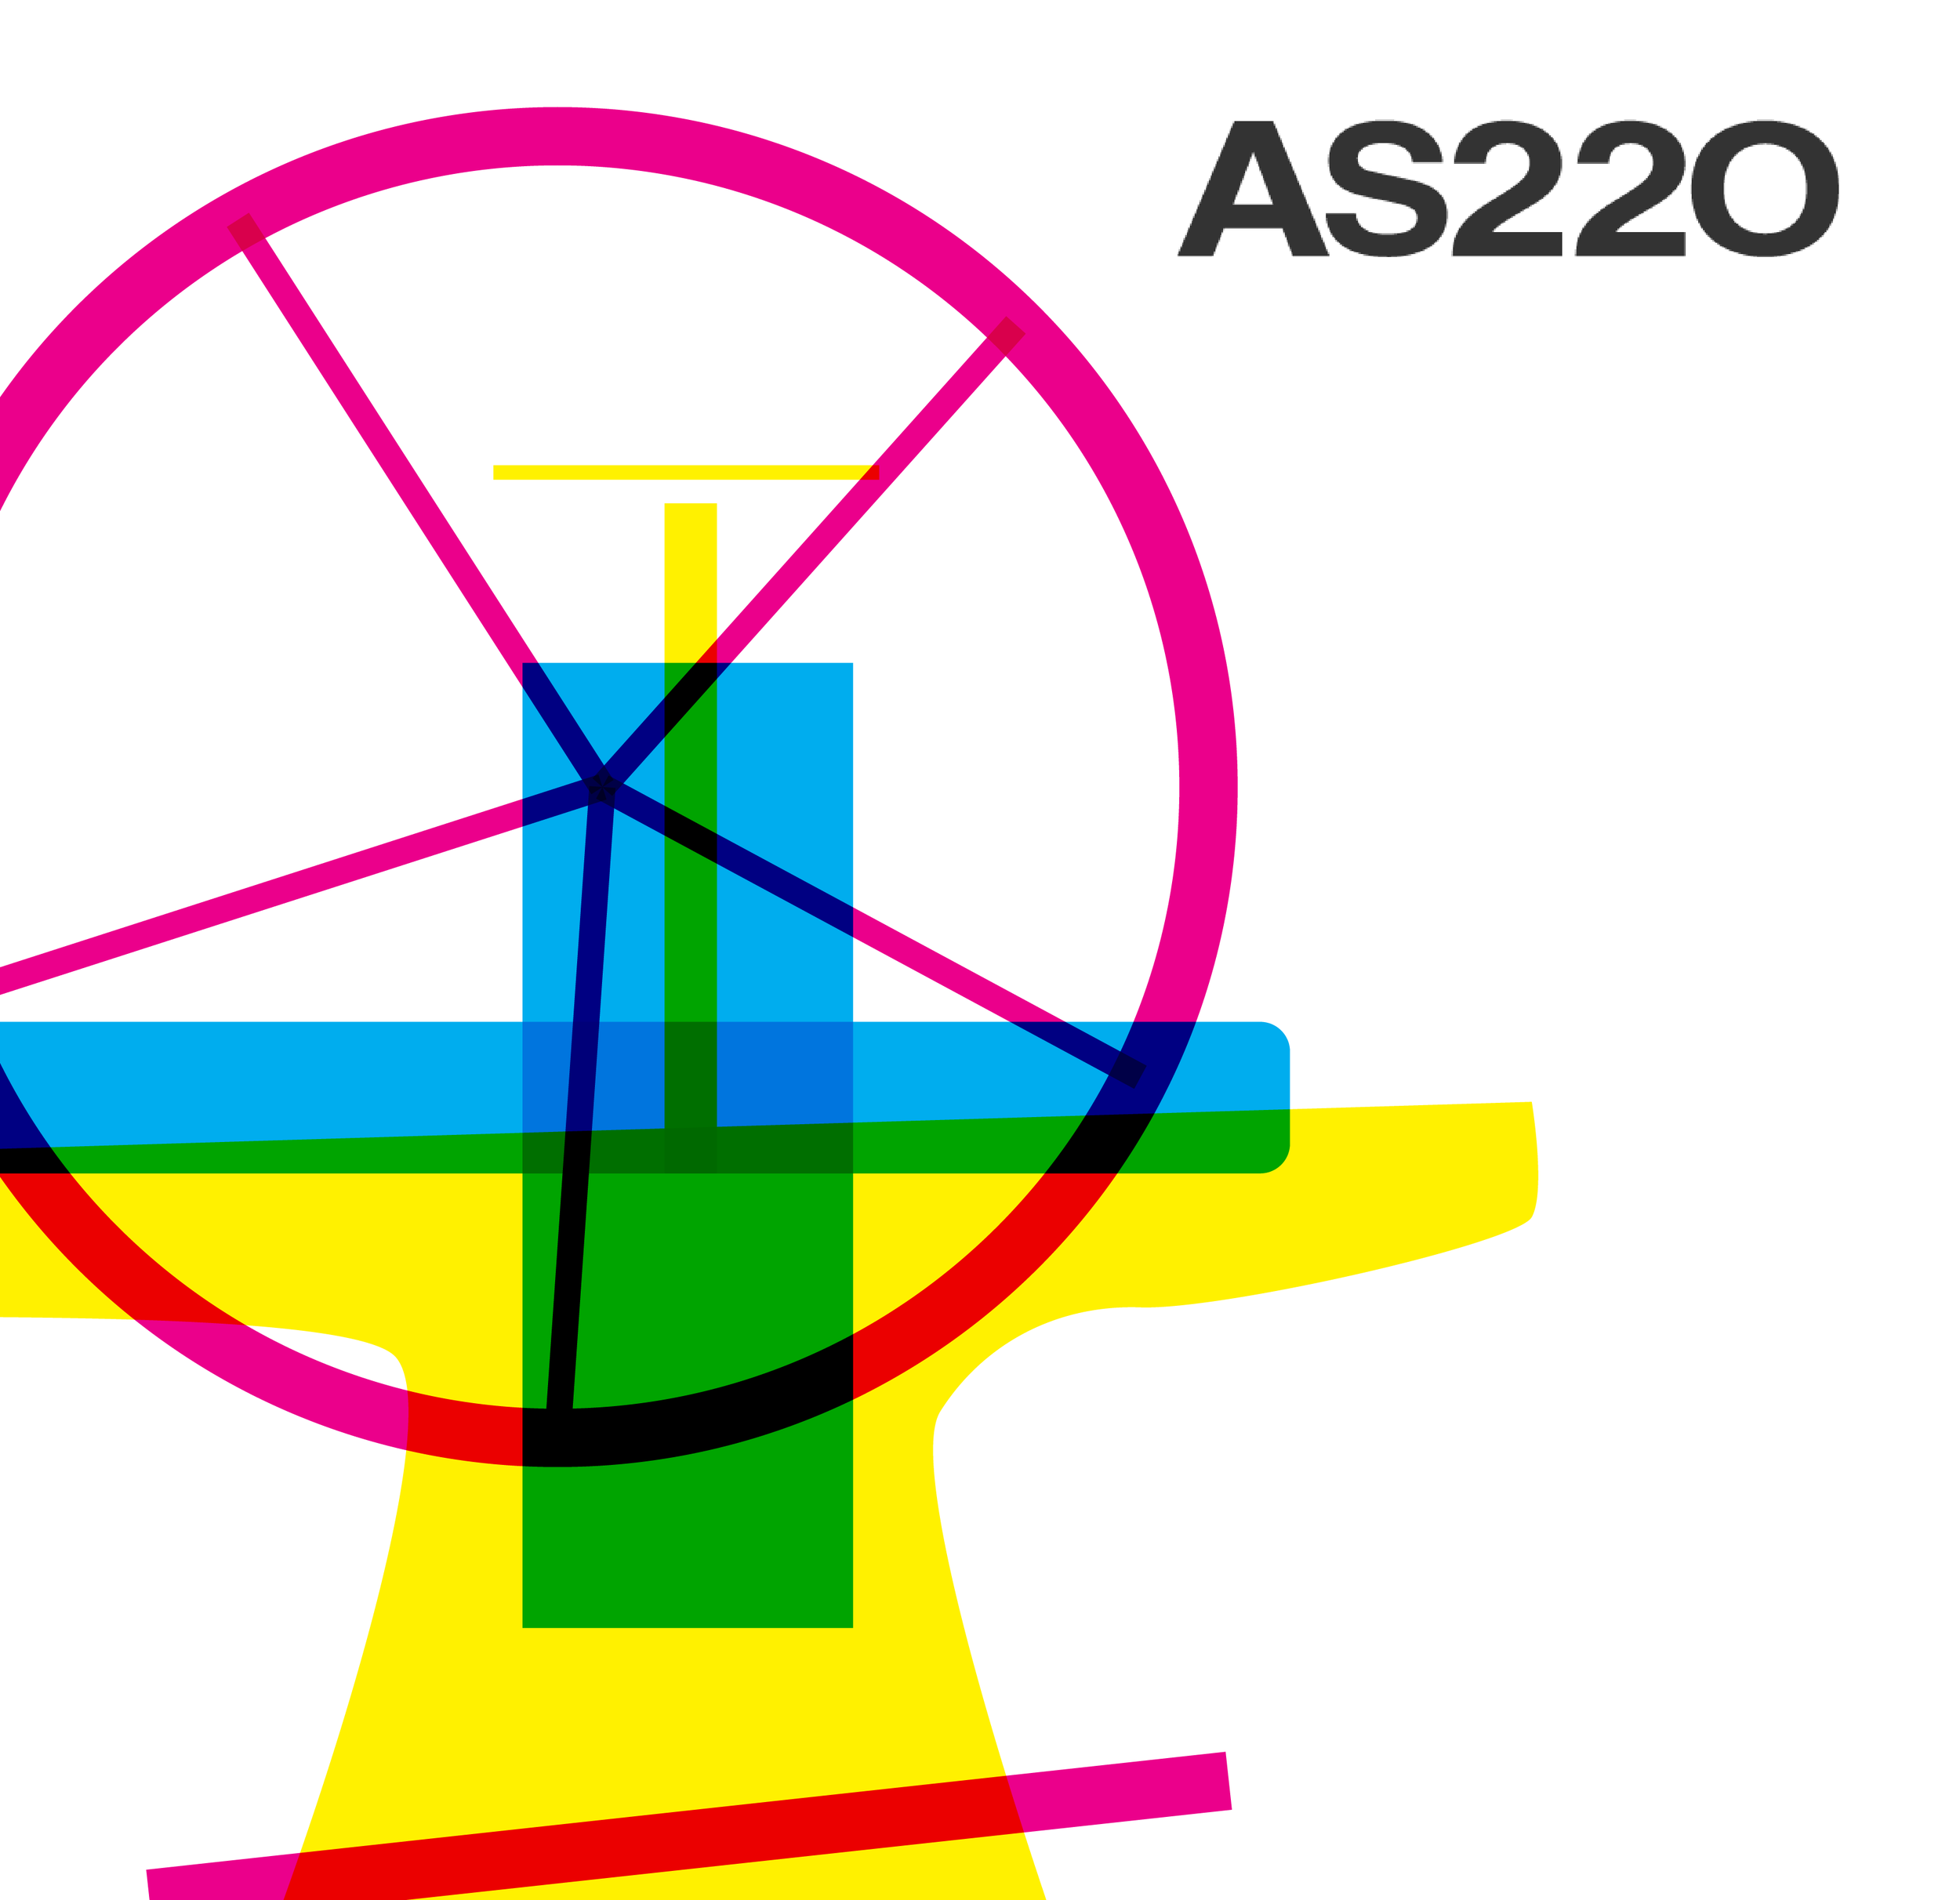 AS220 Commercial Design